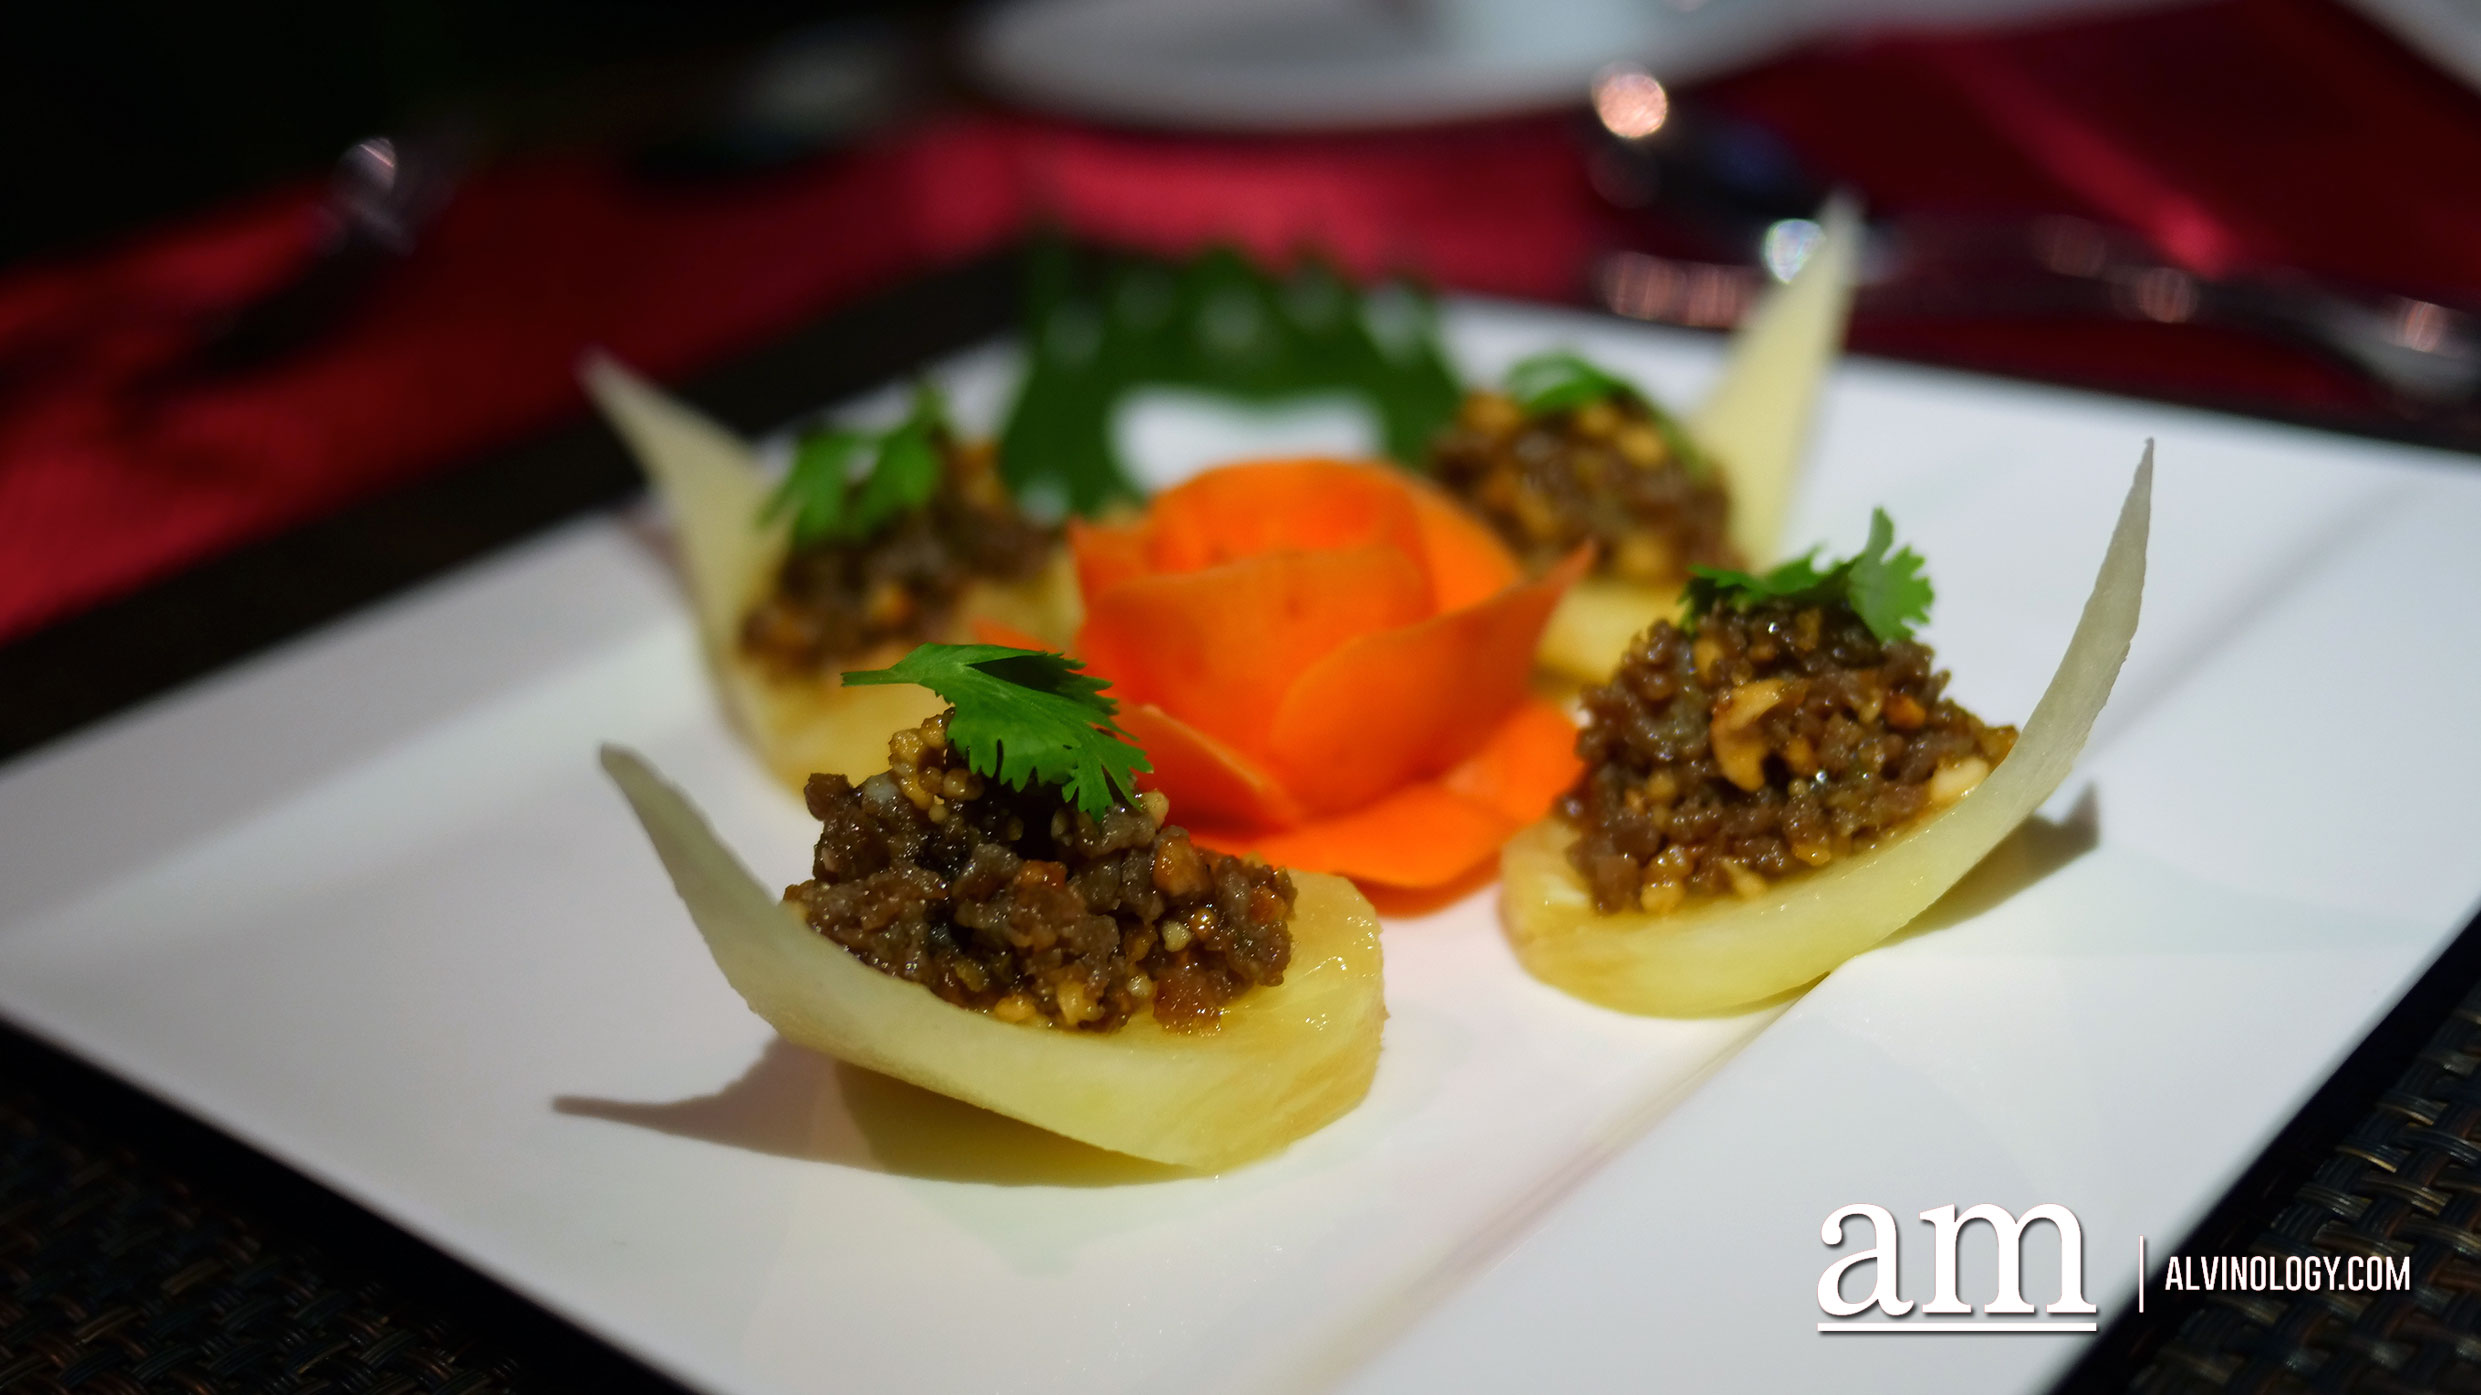 Amuse Bouche - Minced pork and prawns stir fried in a cilantro paste, seasoned with palm sugar and peanuts, served on a pineapple bite